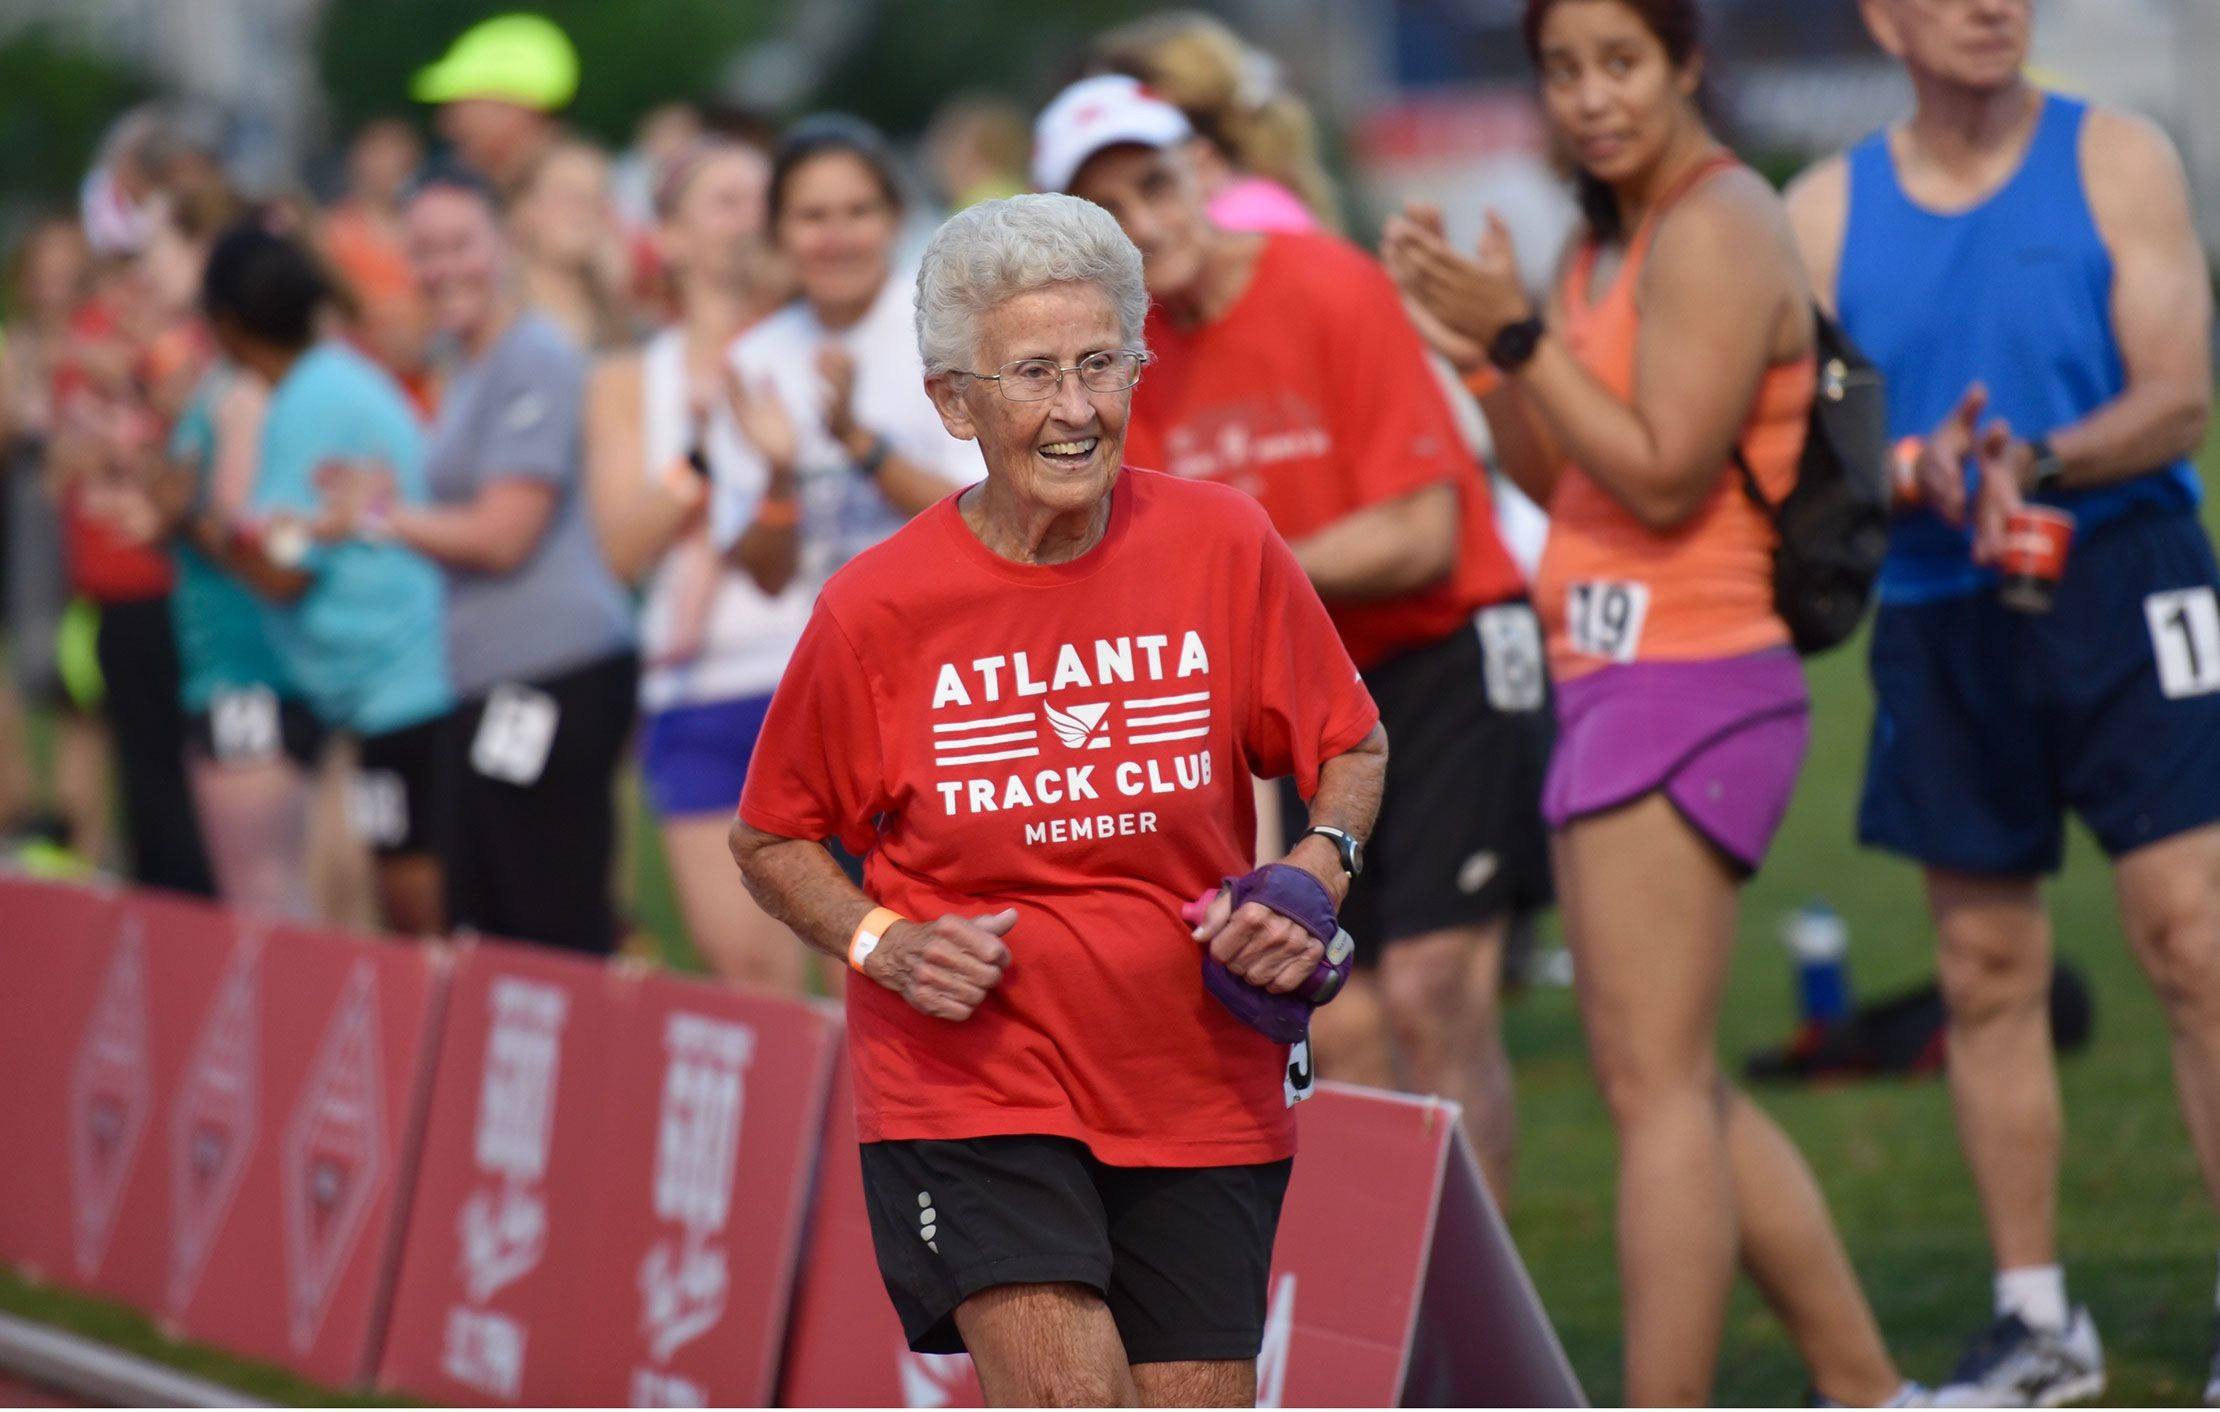 93-year-old Betty Lindberg is running her 28th Peachtree 10K and she just keeps on going